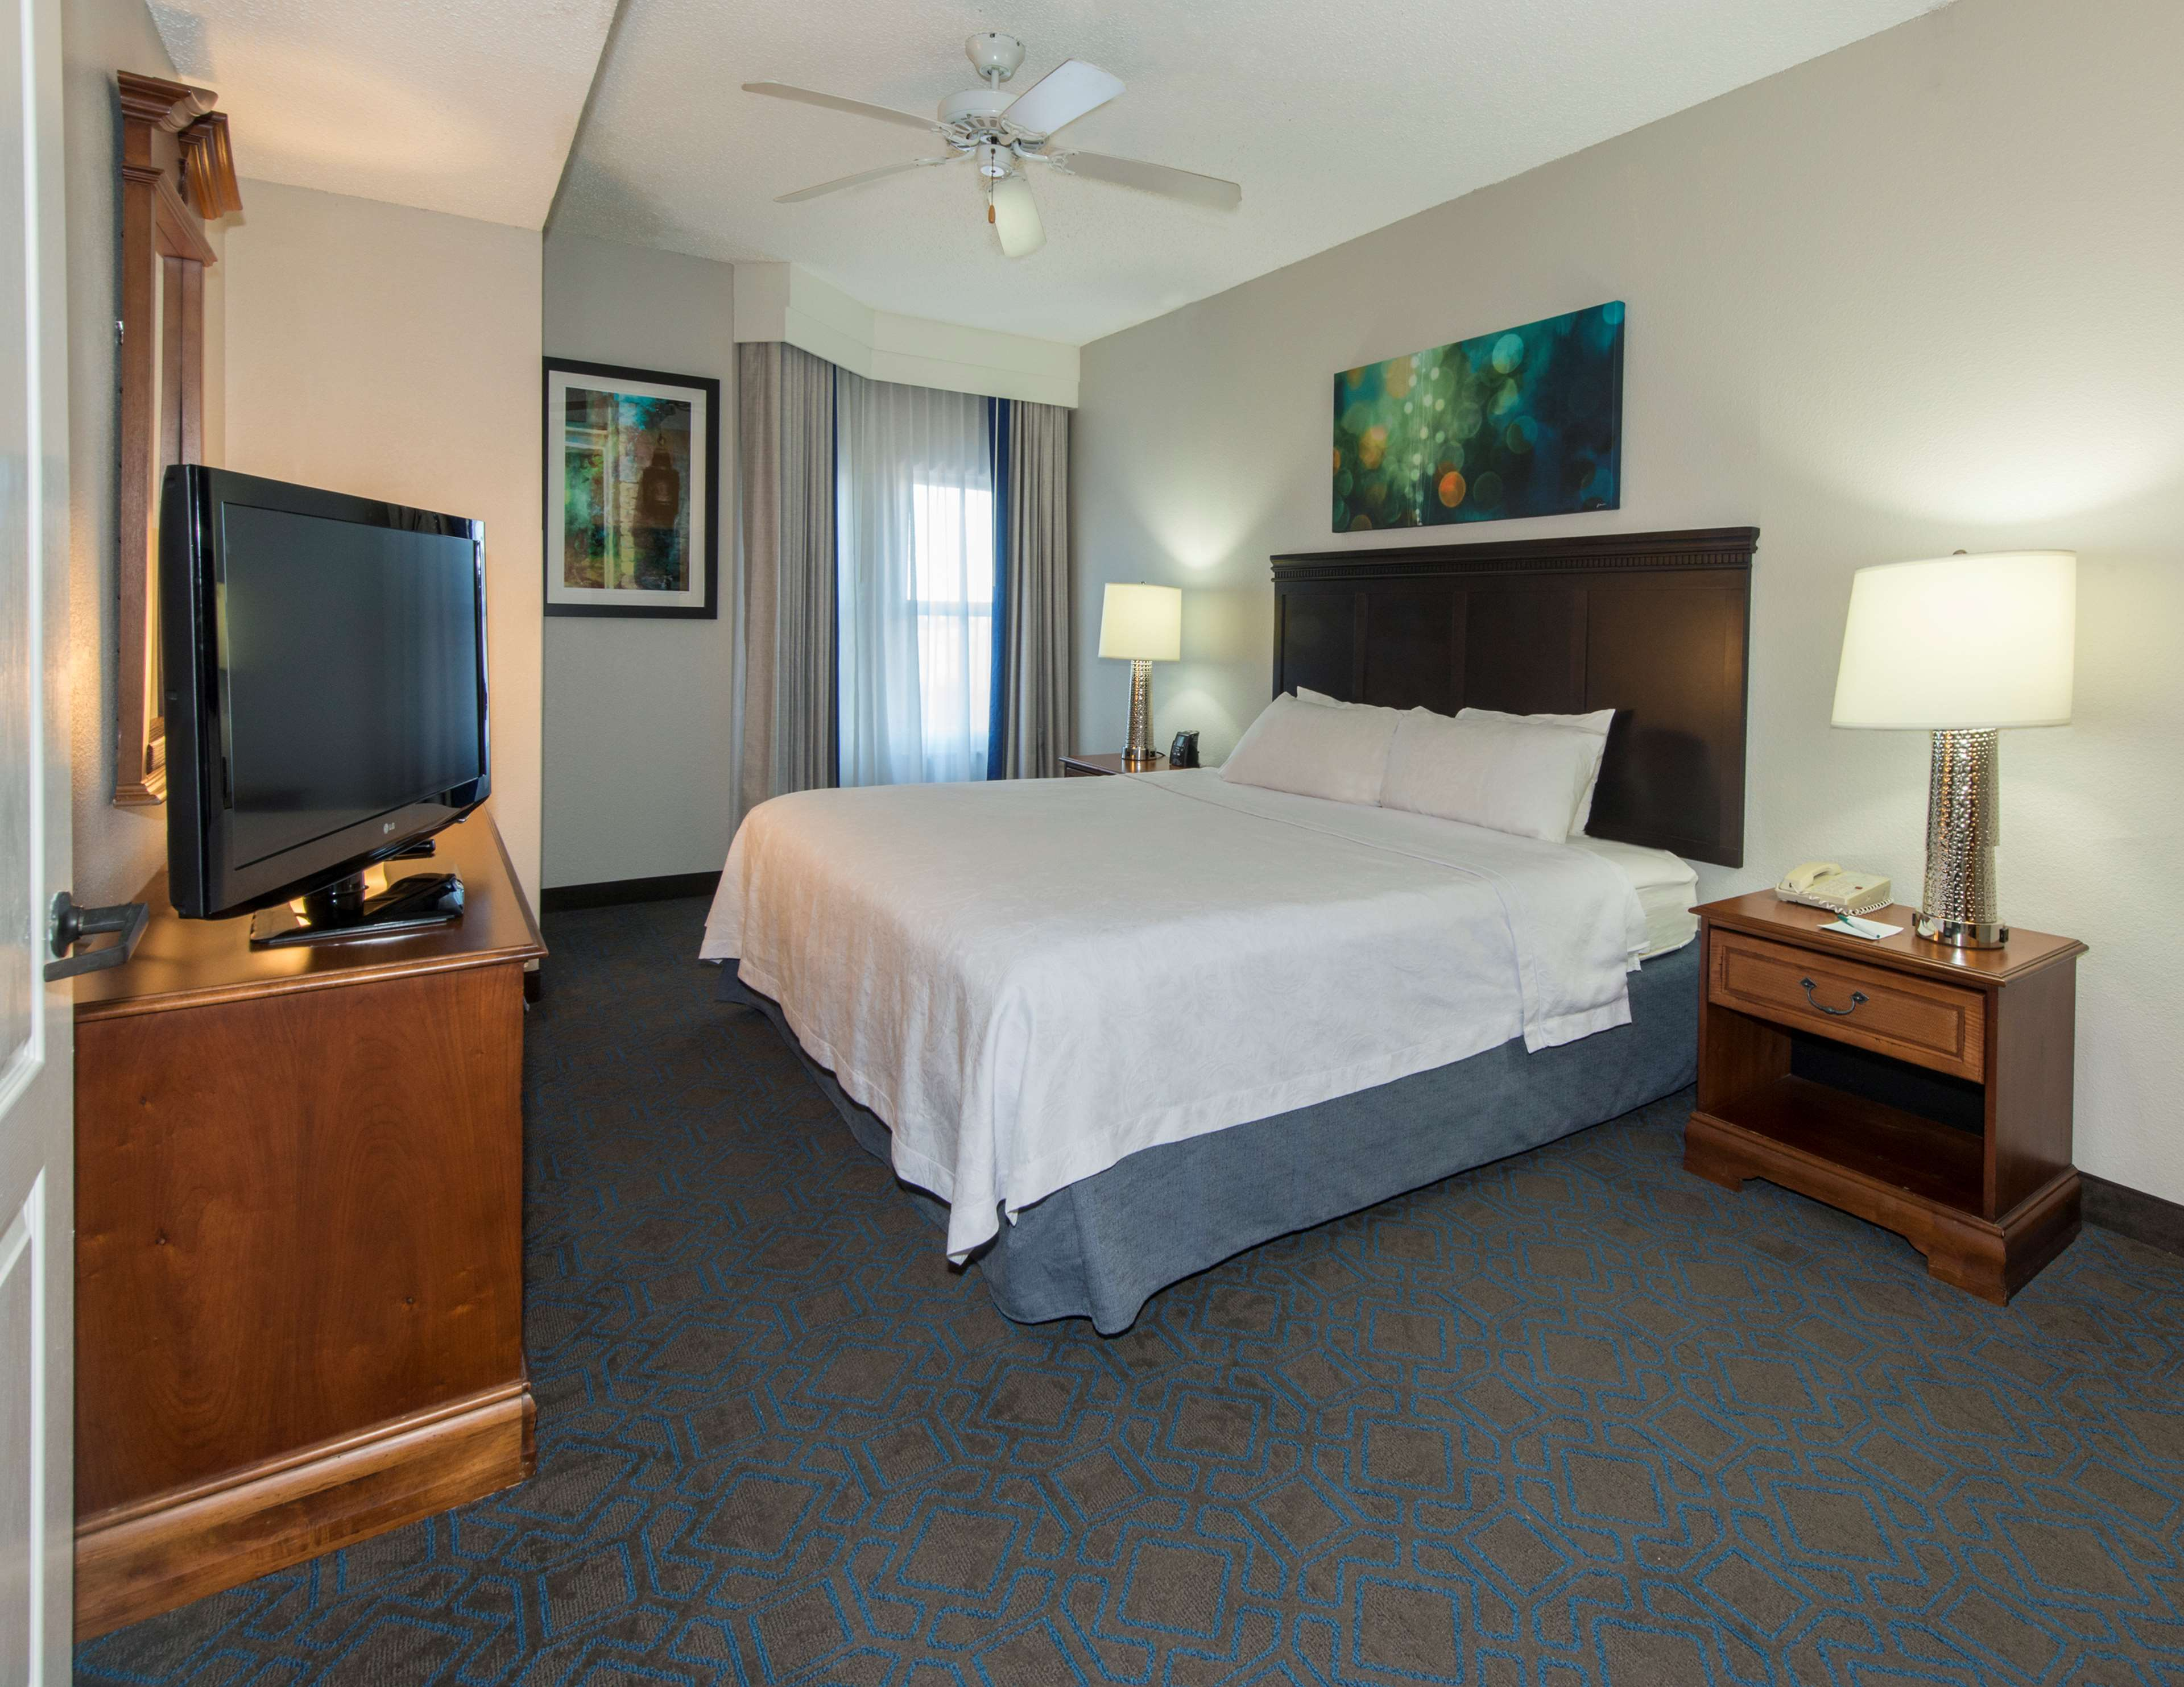 Homewood Suites by Hilton New Orleans image 22